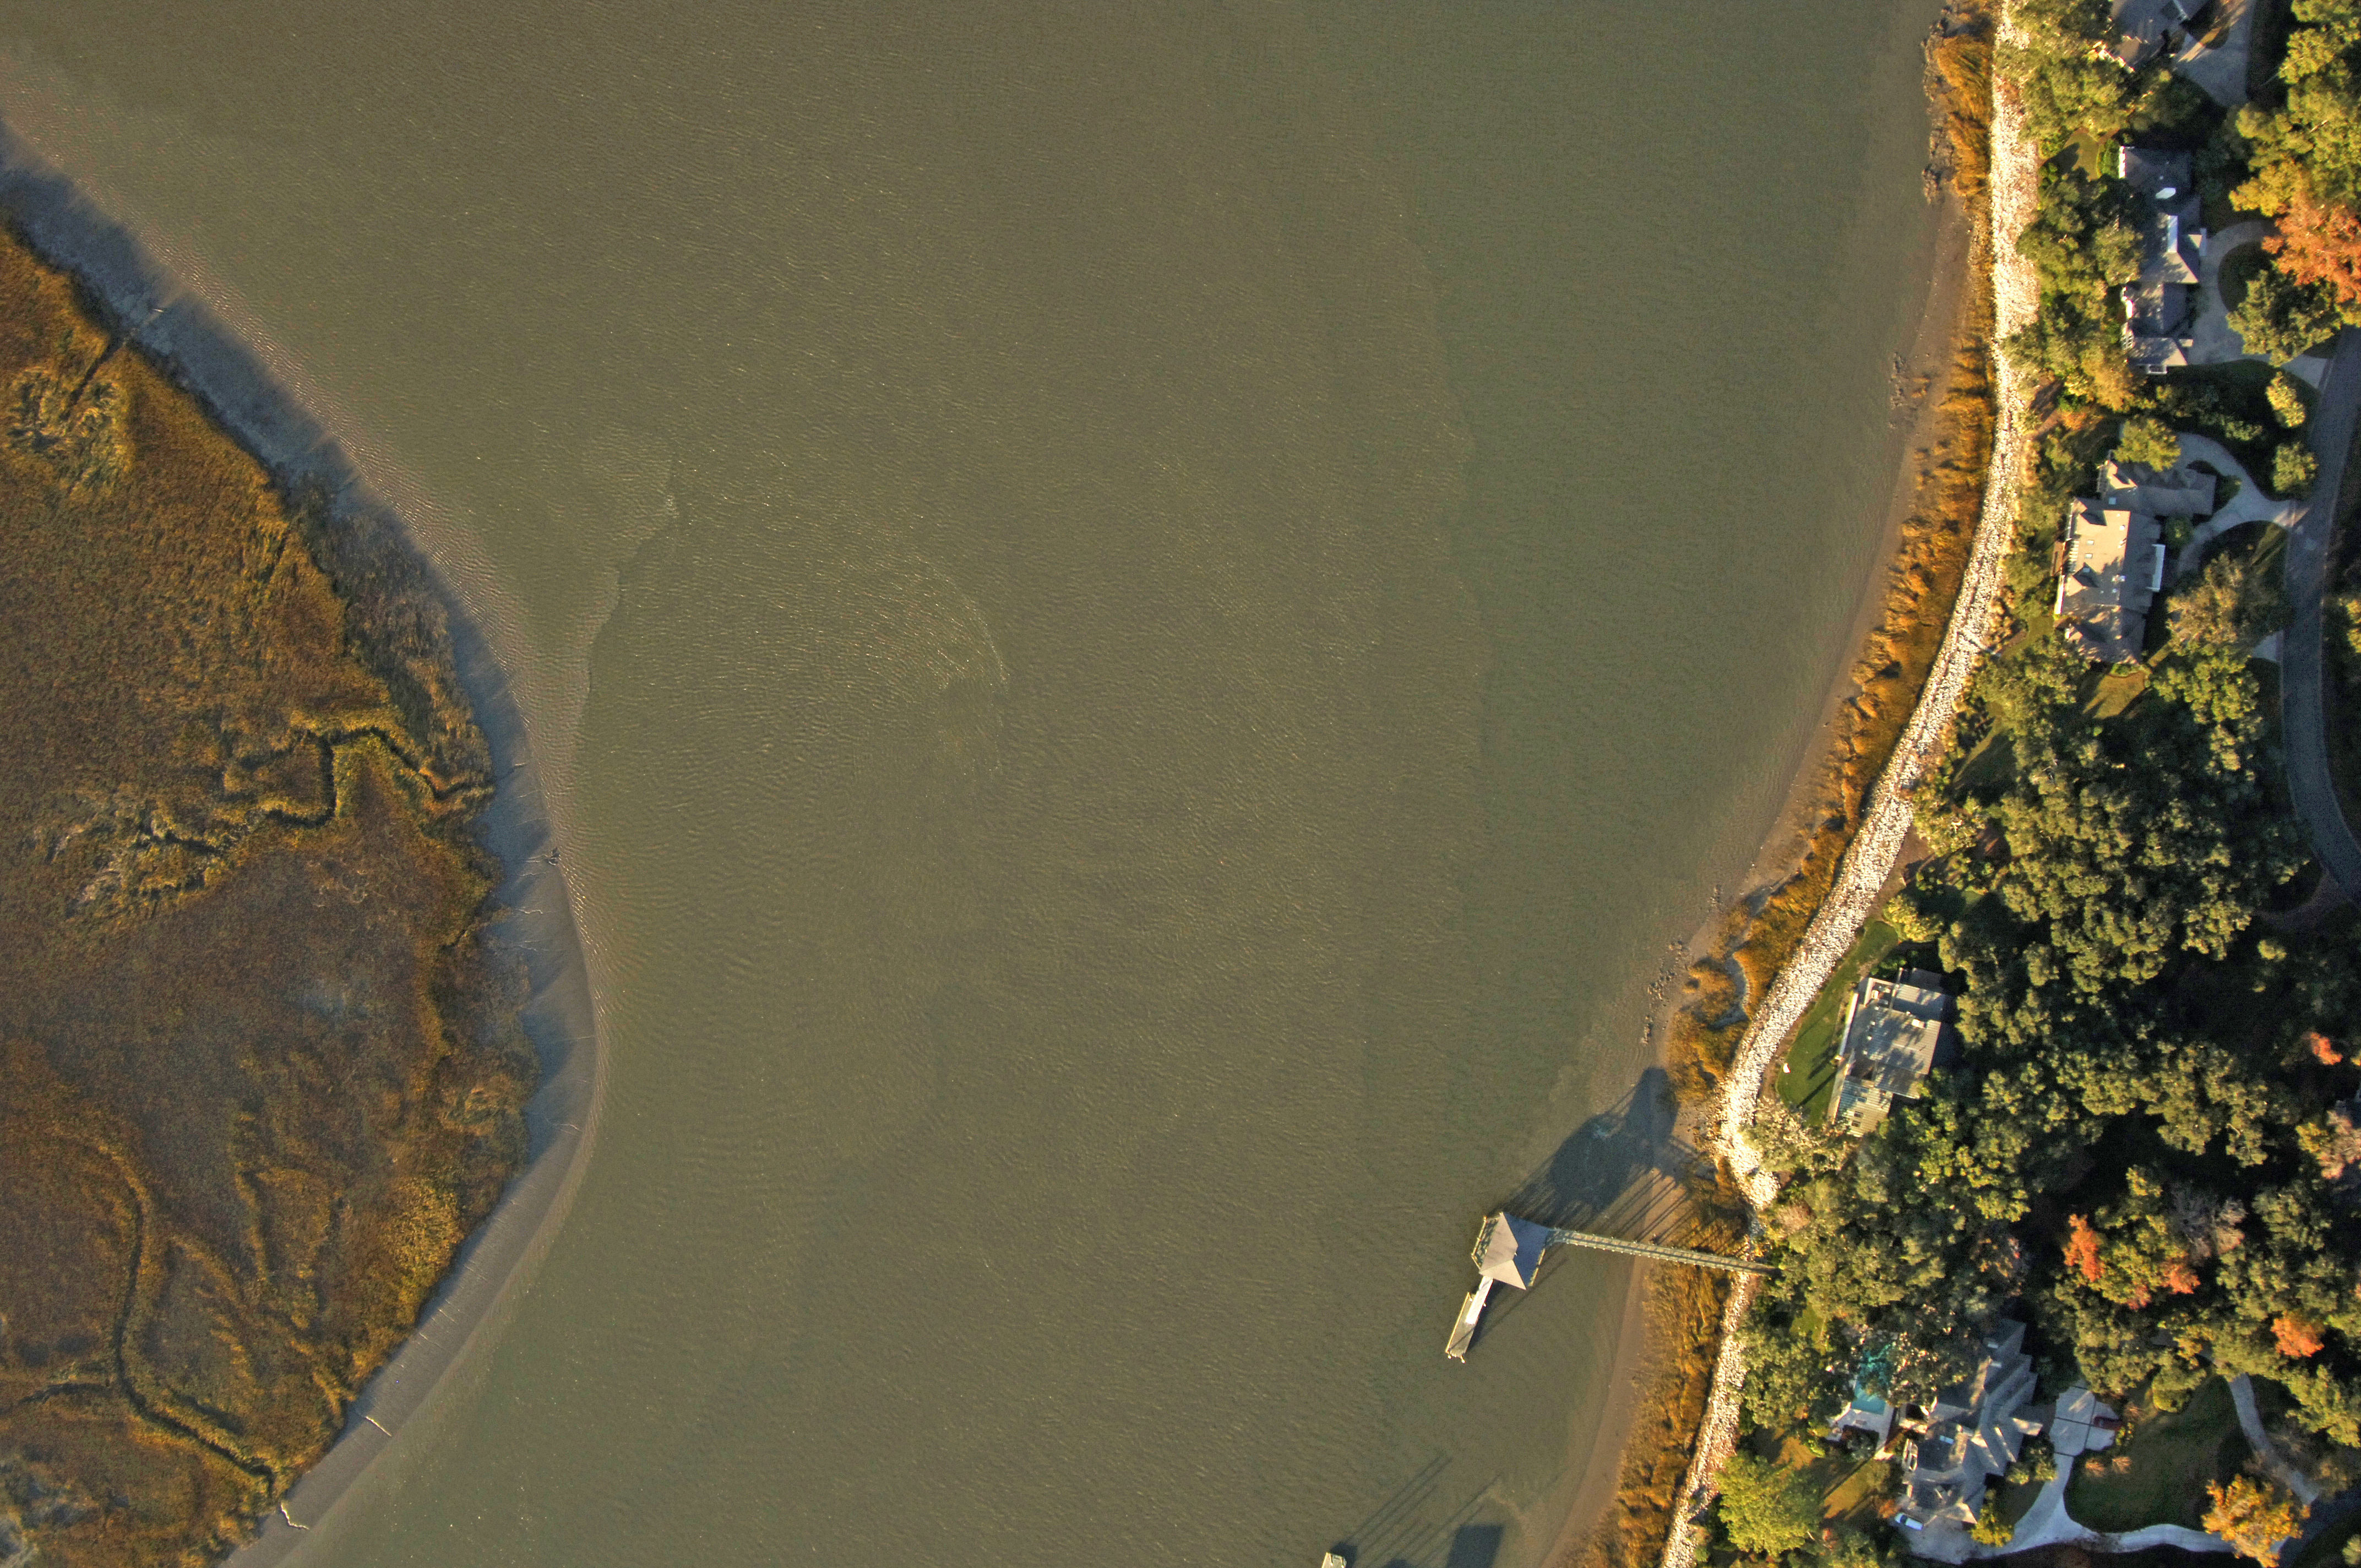 Moon river inlet in savannah ga united states inlet reviews moon river inlet in savannah ga united states inlet reviews phone number marinas nvjuhfo Images